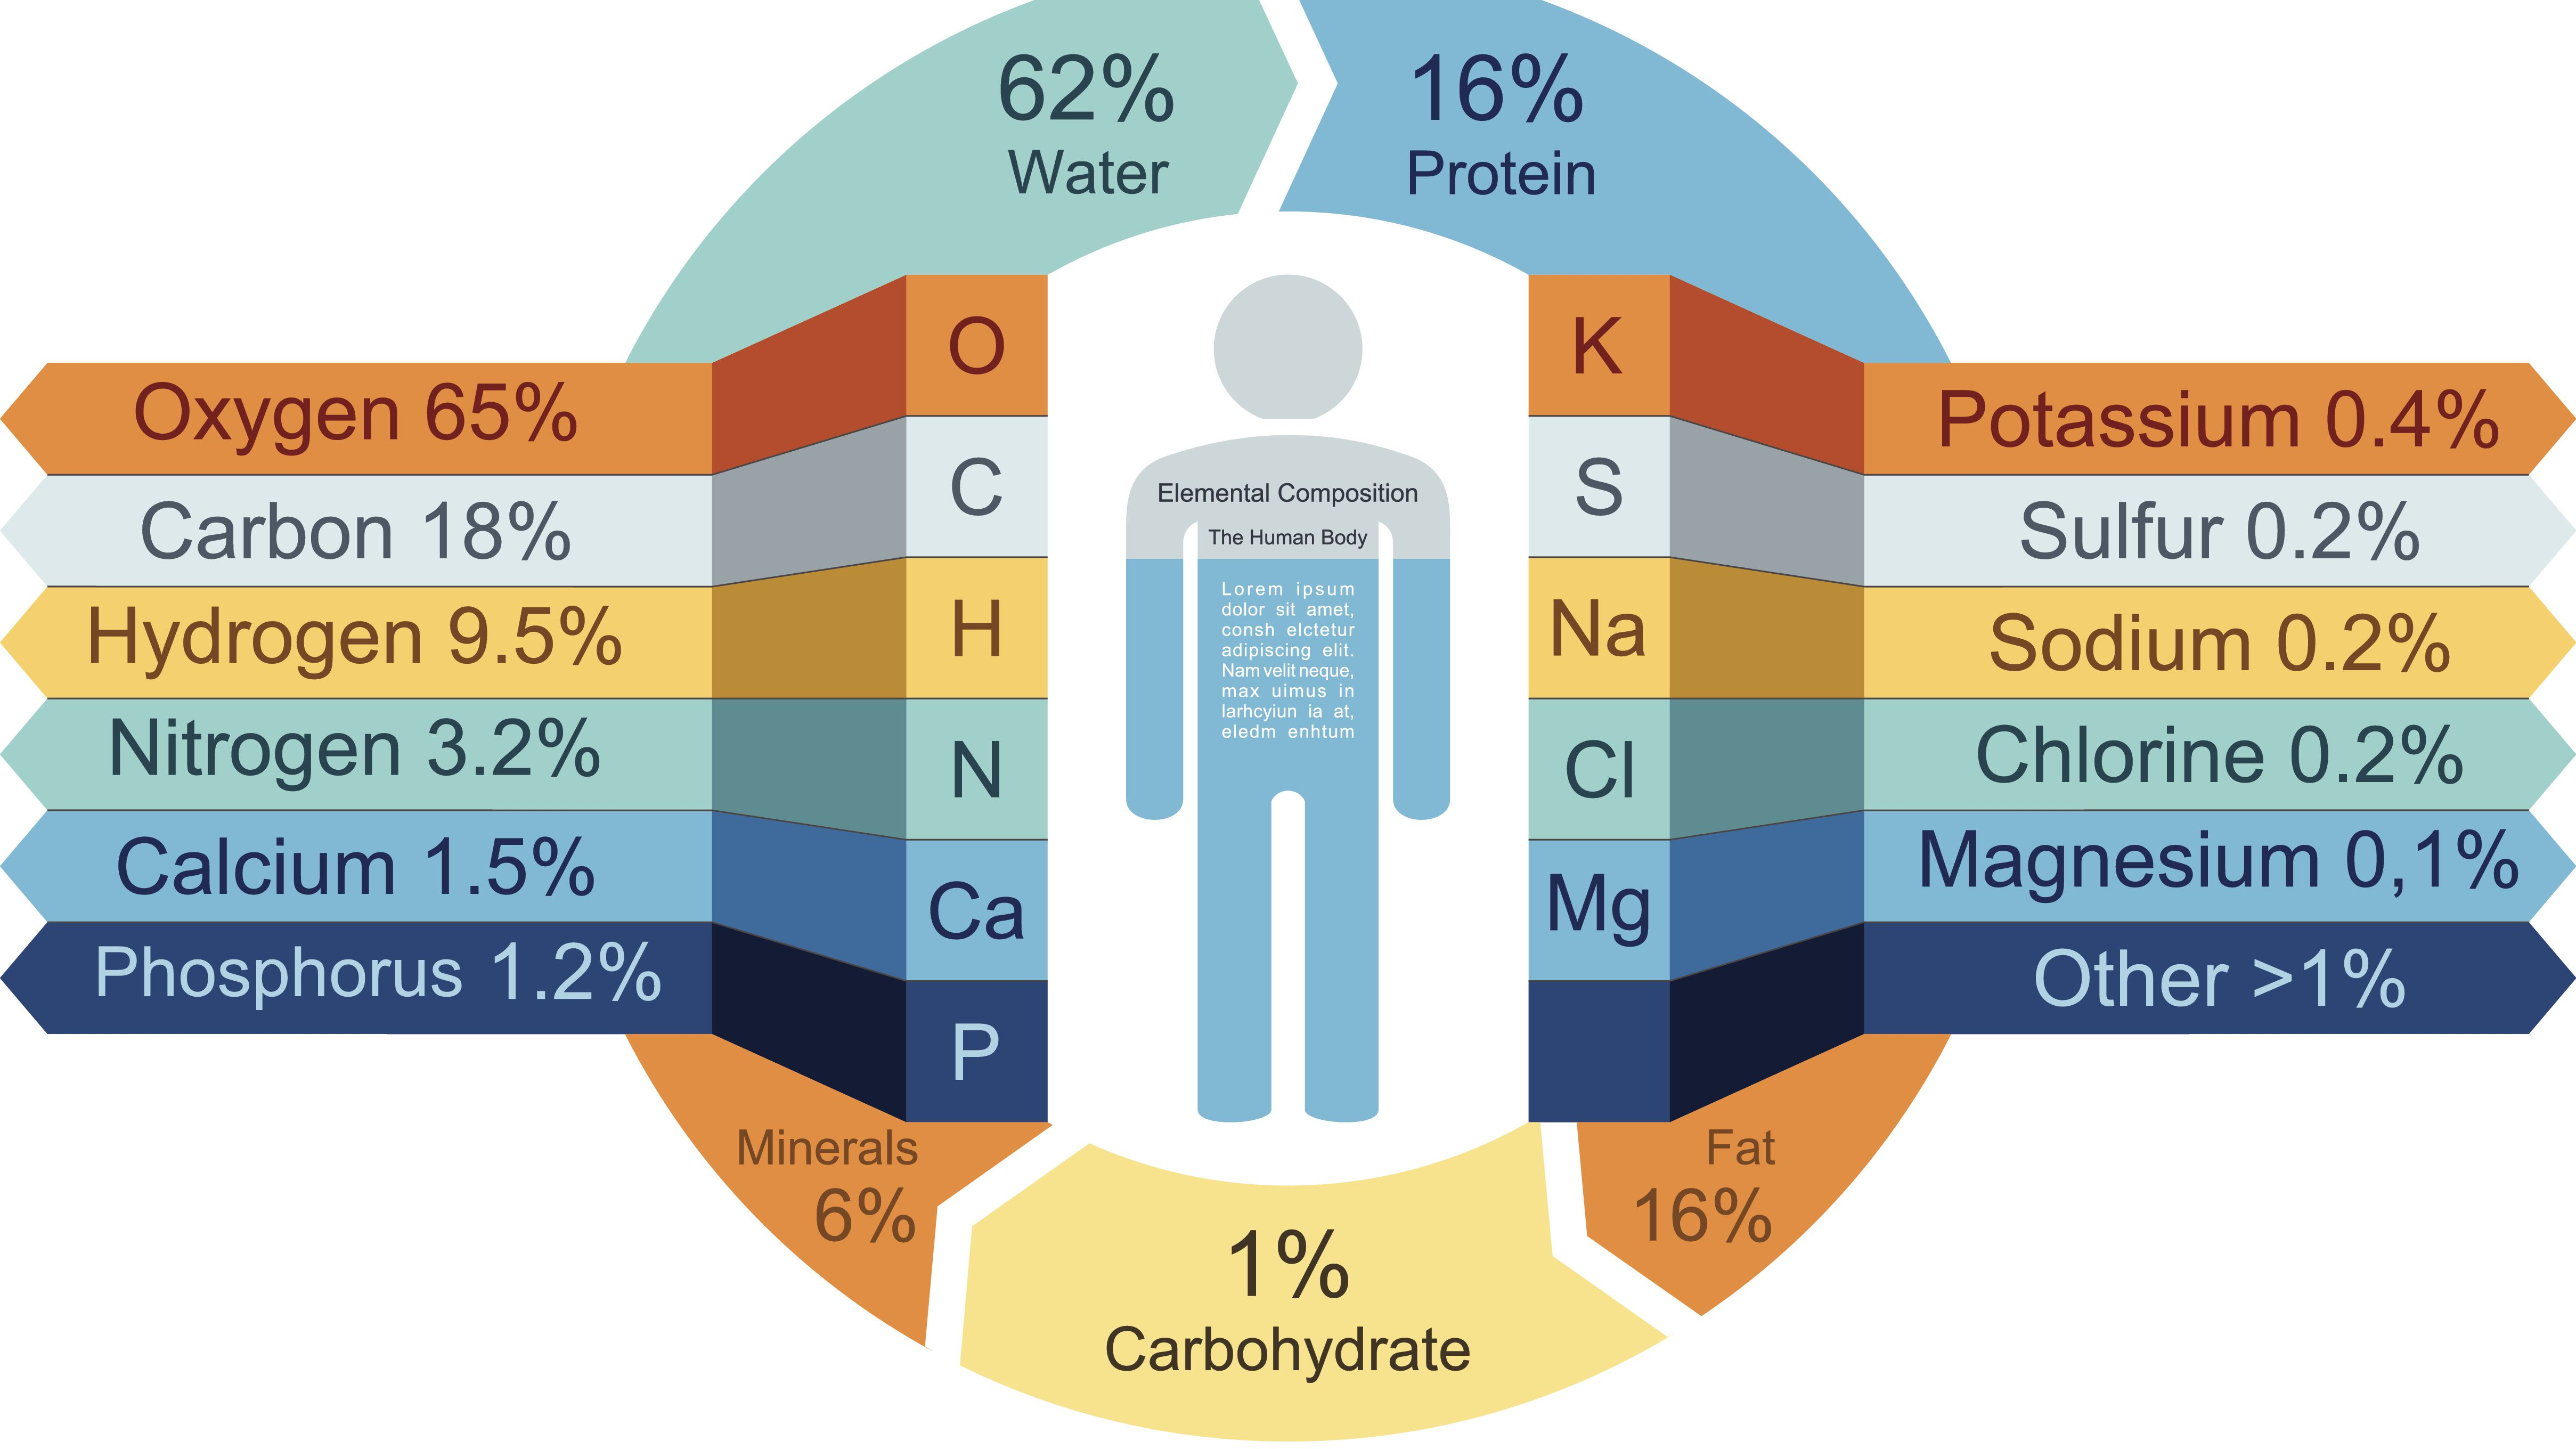 What Atoms Make Up Carbohydrates